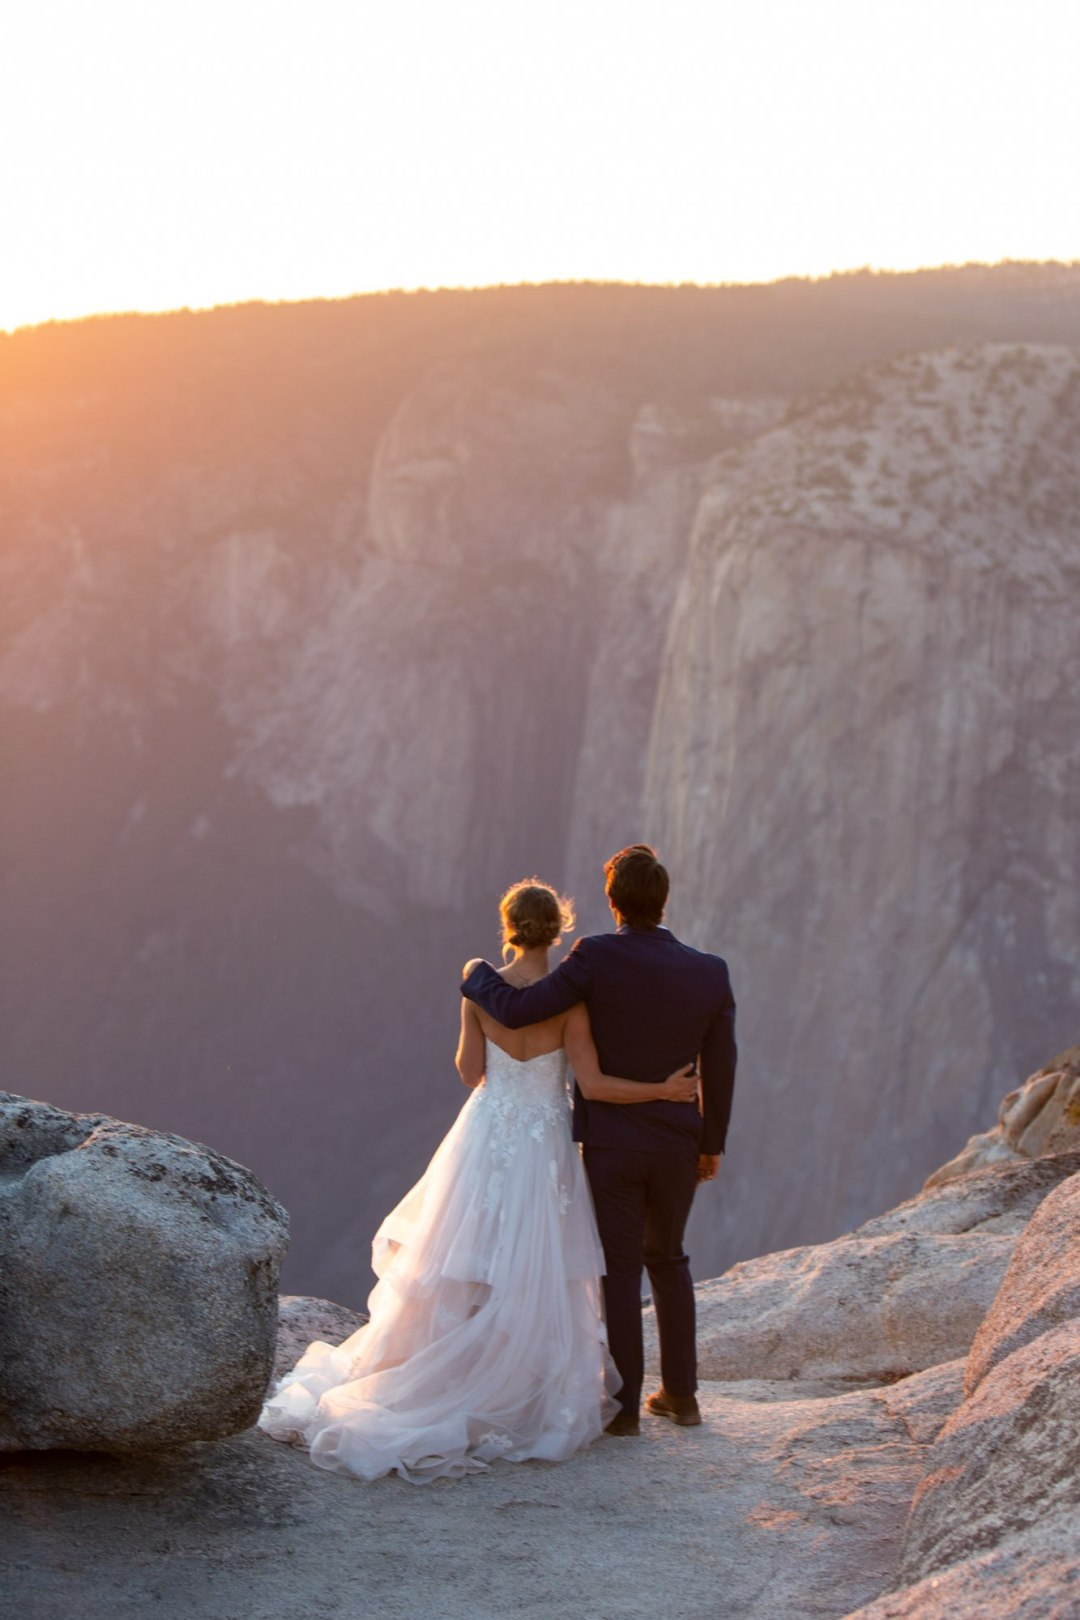 Groom has his arm around bride's shoulder while they stare out over Yosemite Valley